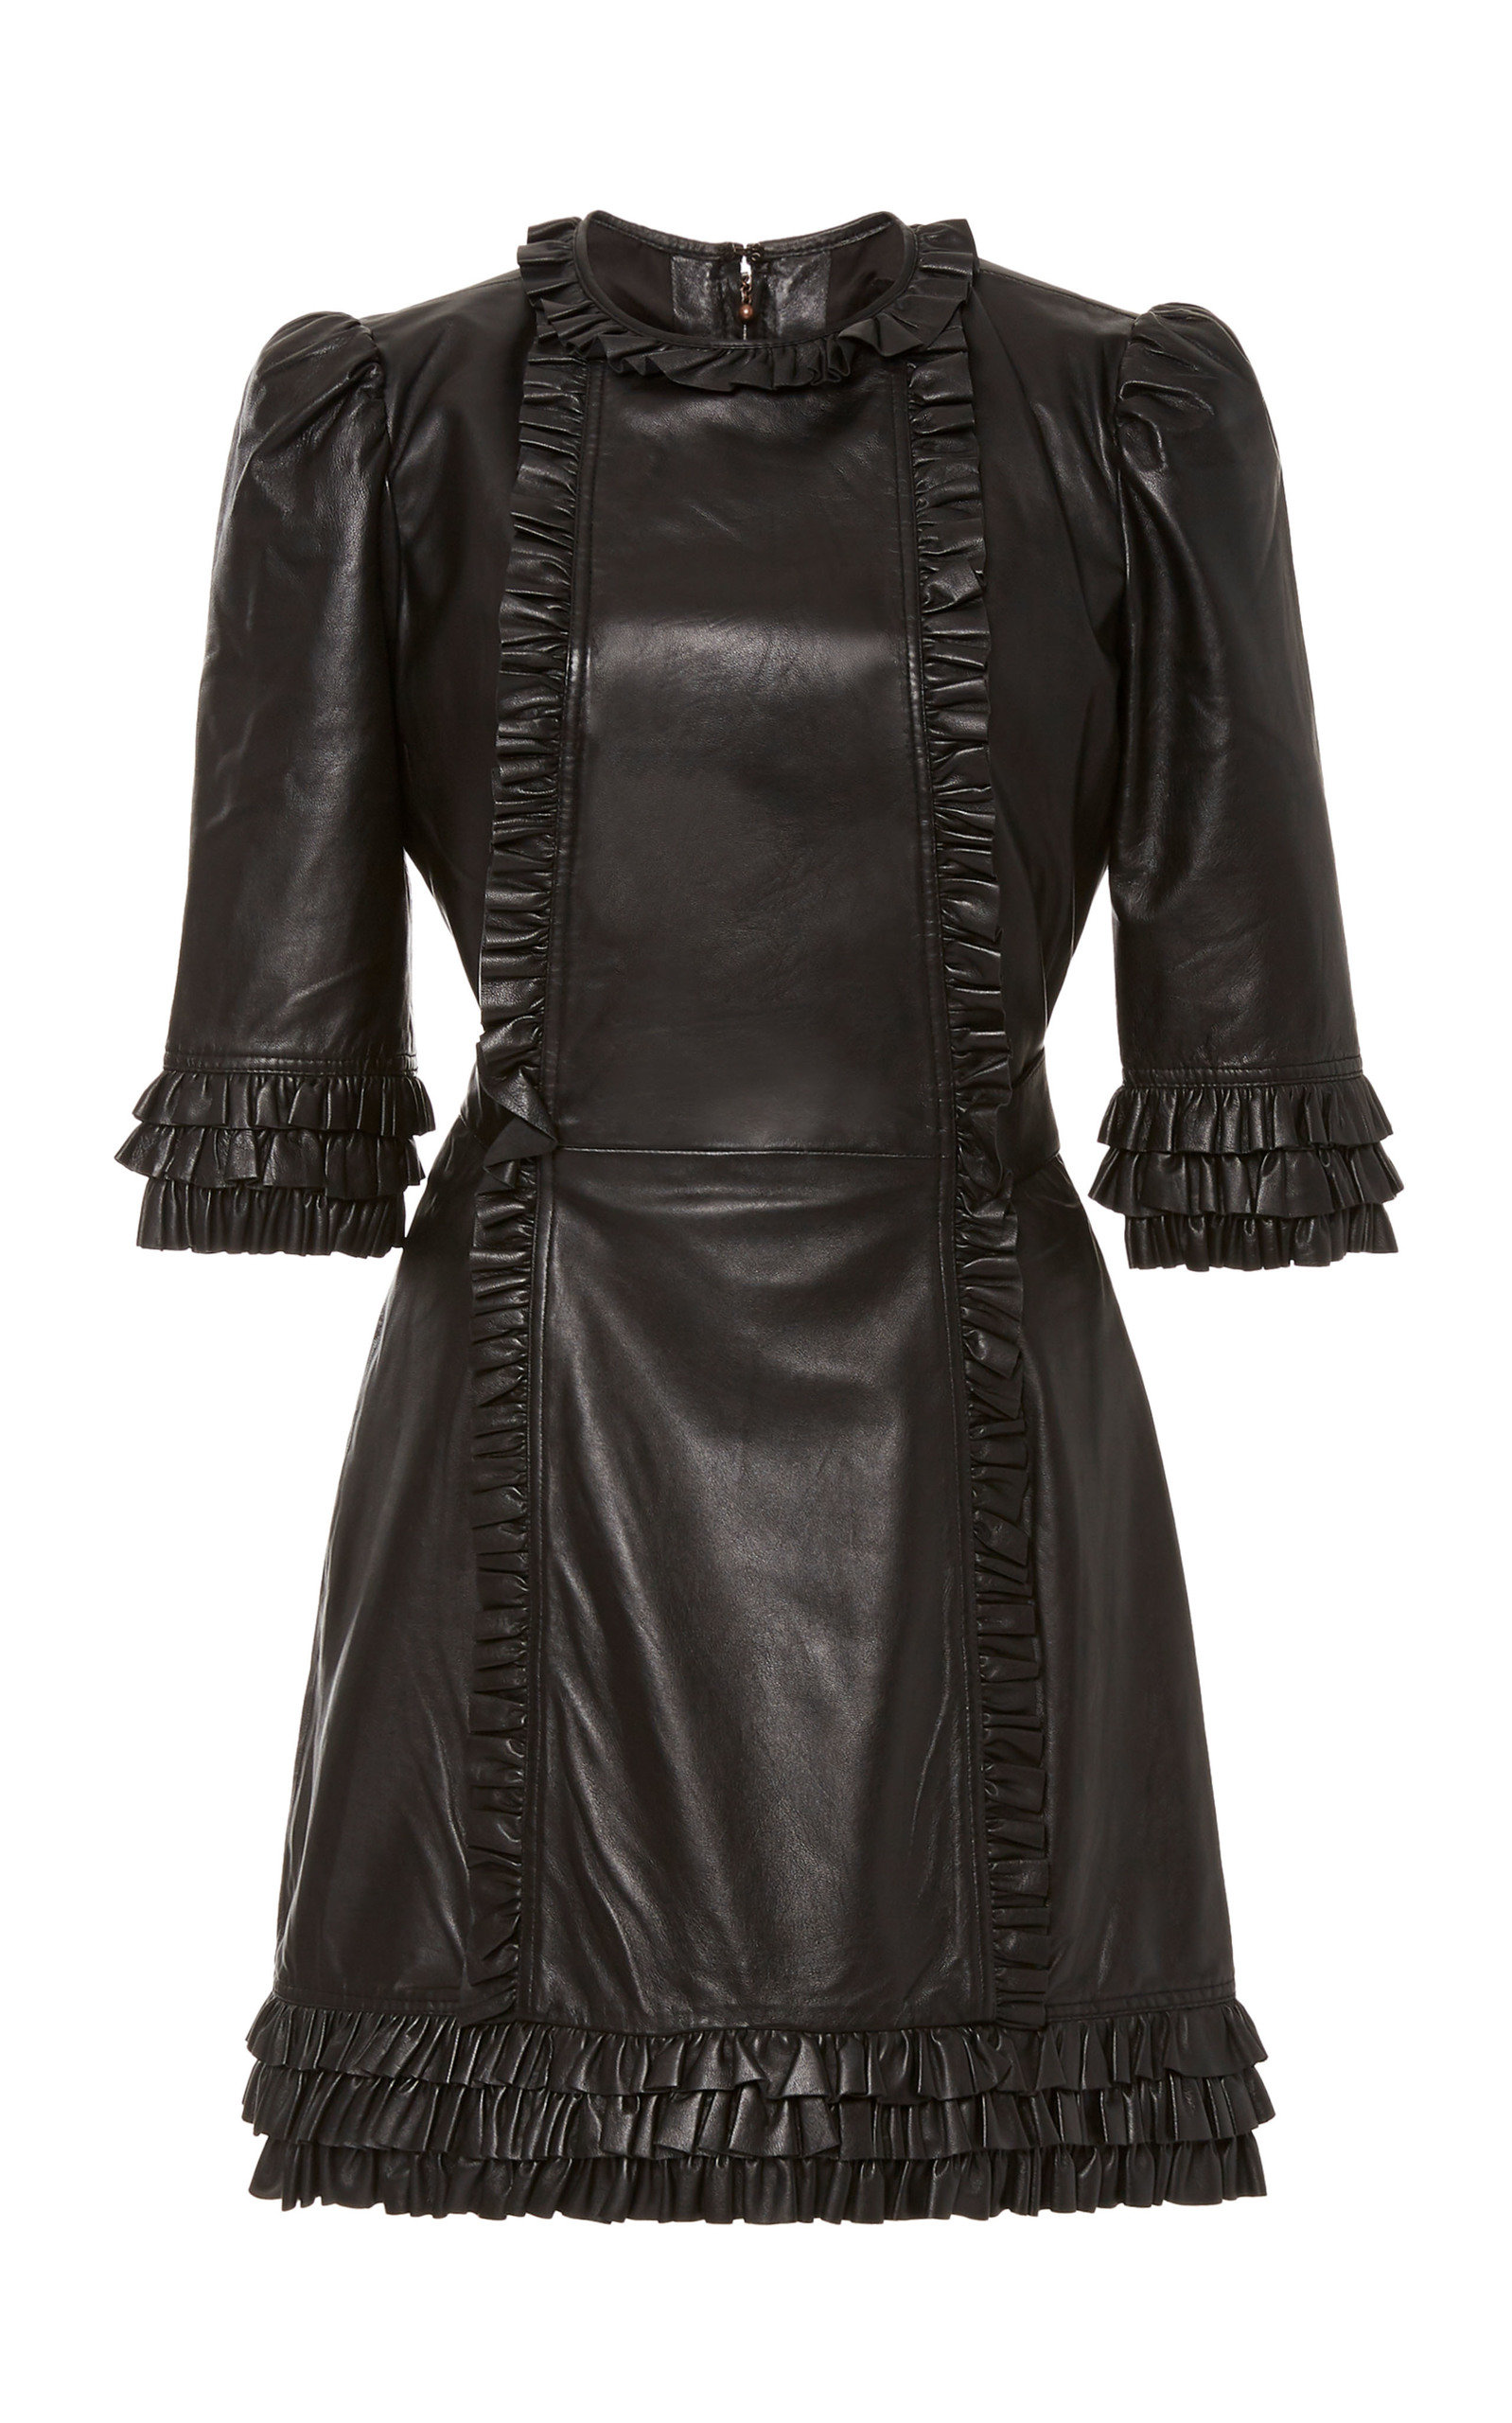 Buy Current/Elliott x The Vampire's Wife Kate Ruffled Leather Mini Dress online, shop Current/Elliott x The Vampire's Wife at the best price